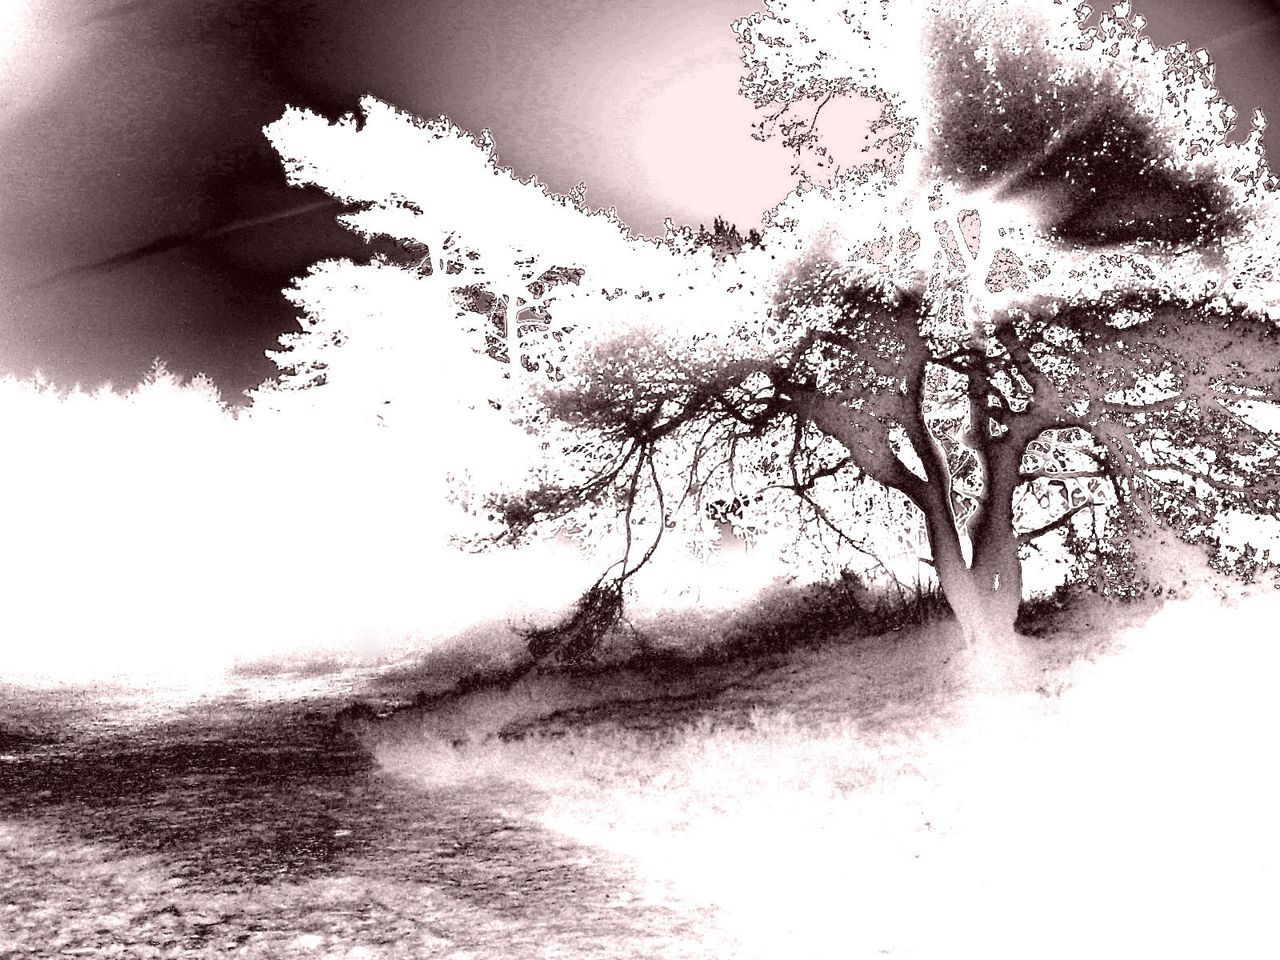 Tree Special Effects Solarized Artistic Photography Monochrome Mysterious Mist Mysterious Mystic High Contrast